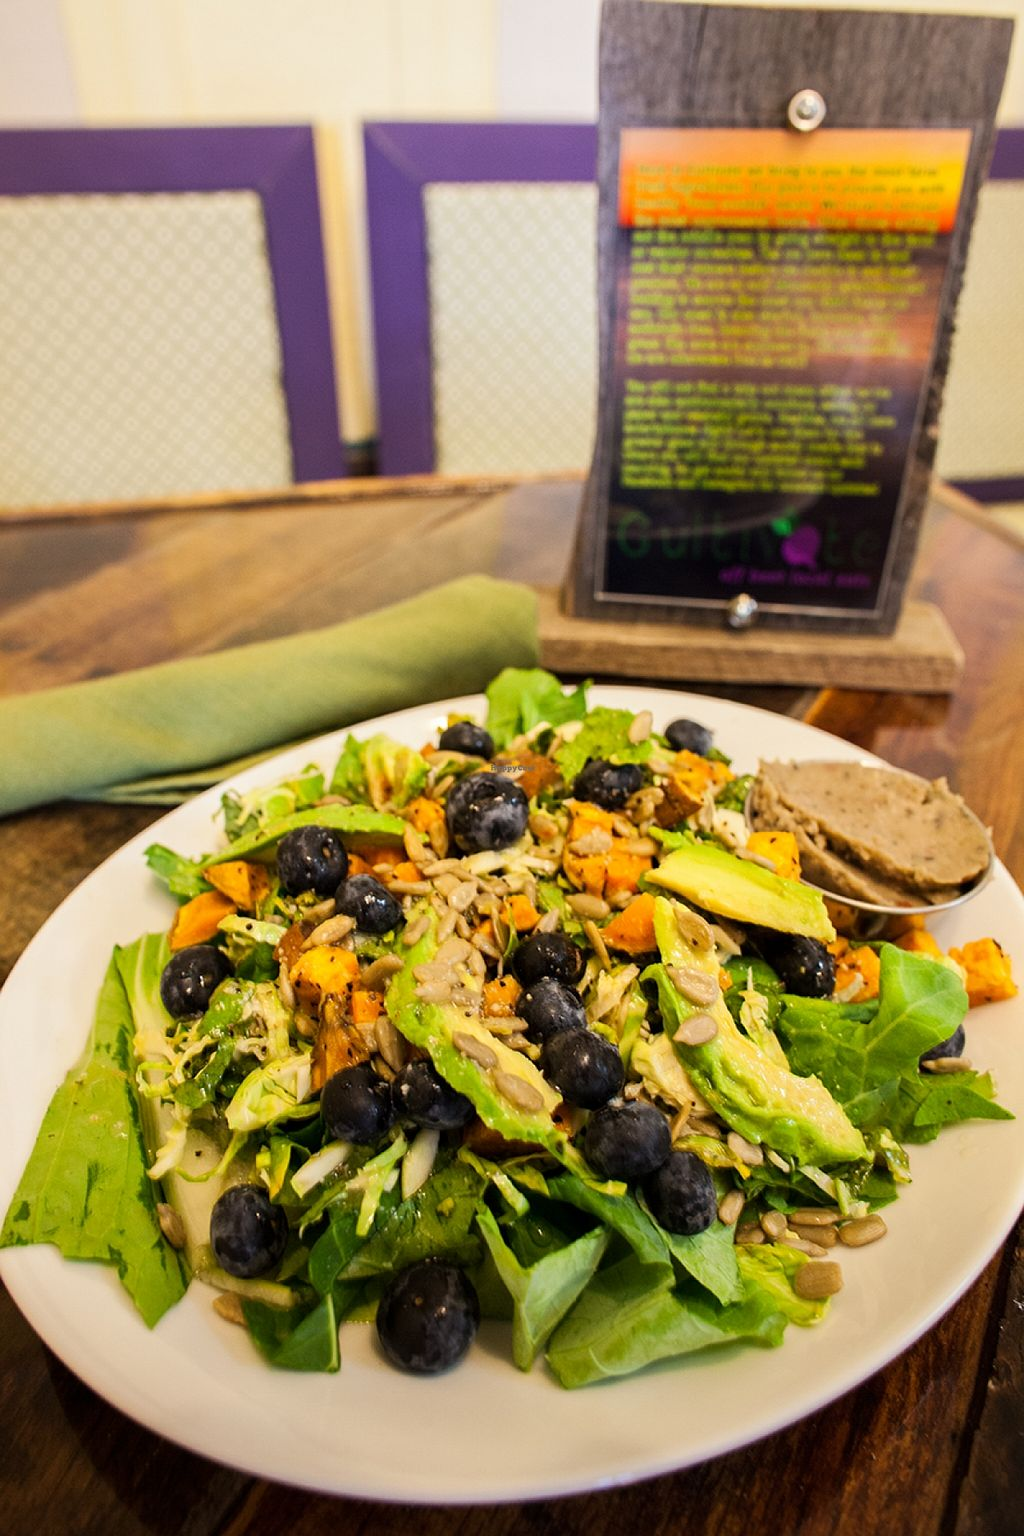 """Photo of CLOSED: Cultivate Cafe  by <a href=""""/members/profile/Cultivate_Cafe"""">Cultivate_Cafe</a> <br/>Notorious S.F.G. (Super Food Group) Salad-Greenmans Garden greens, avocado, seasonal fruit, kale and brussel sprout slaw, roasted sweet potatos, and a white bean spread. Served with grapefruit vinaigrette  <br/> September 8, 2015  - <a href='/contact/abuse/image/63111/116943'>Report</a>"""